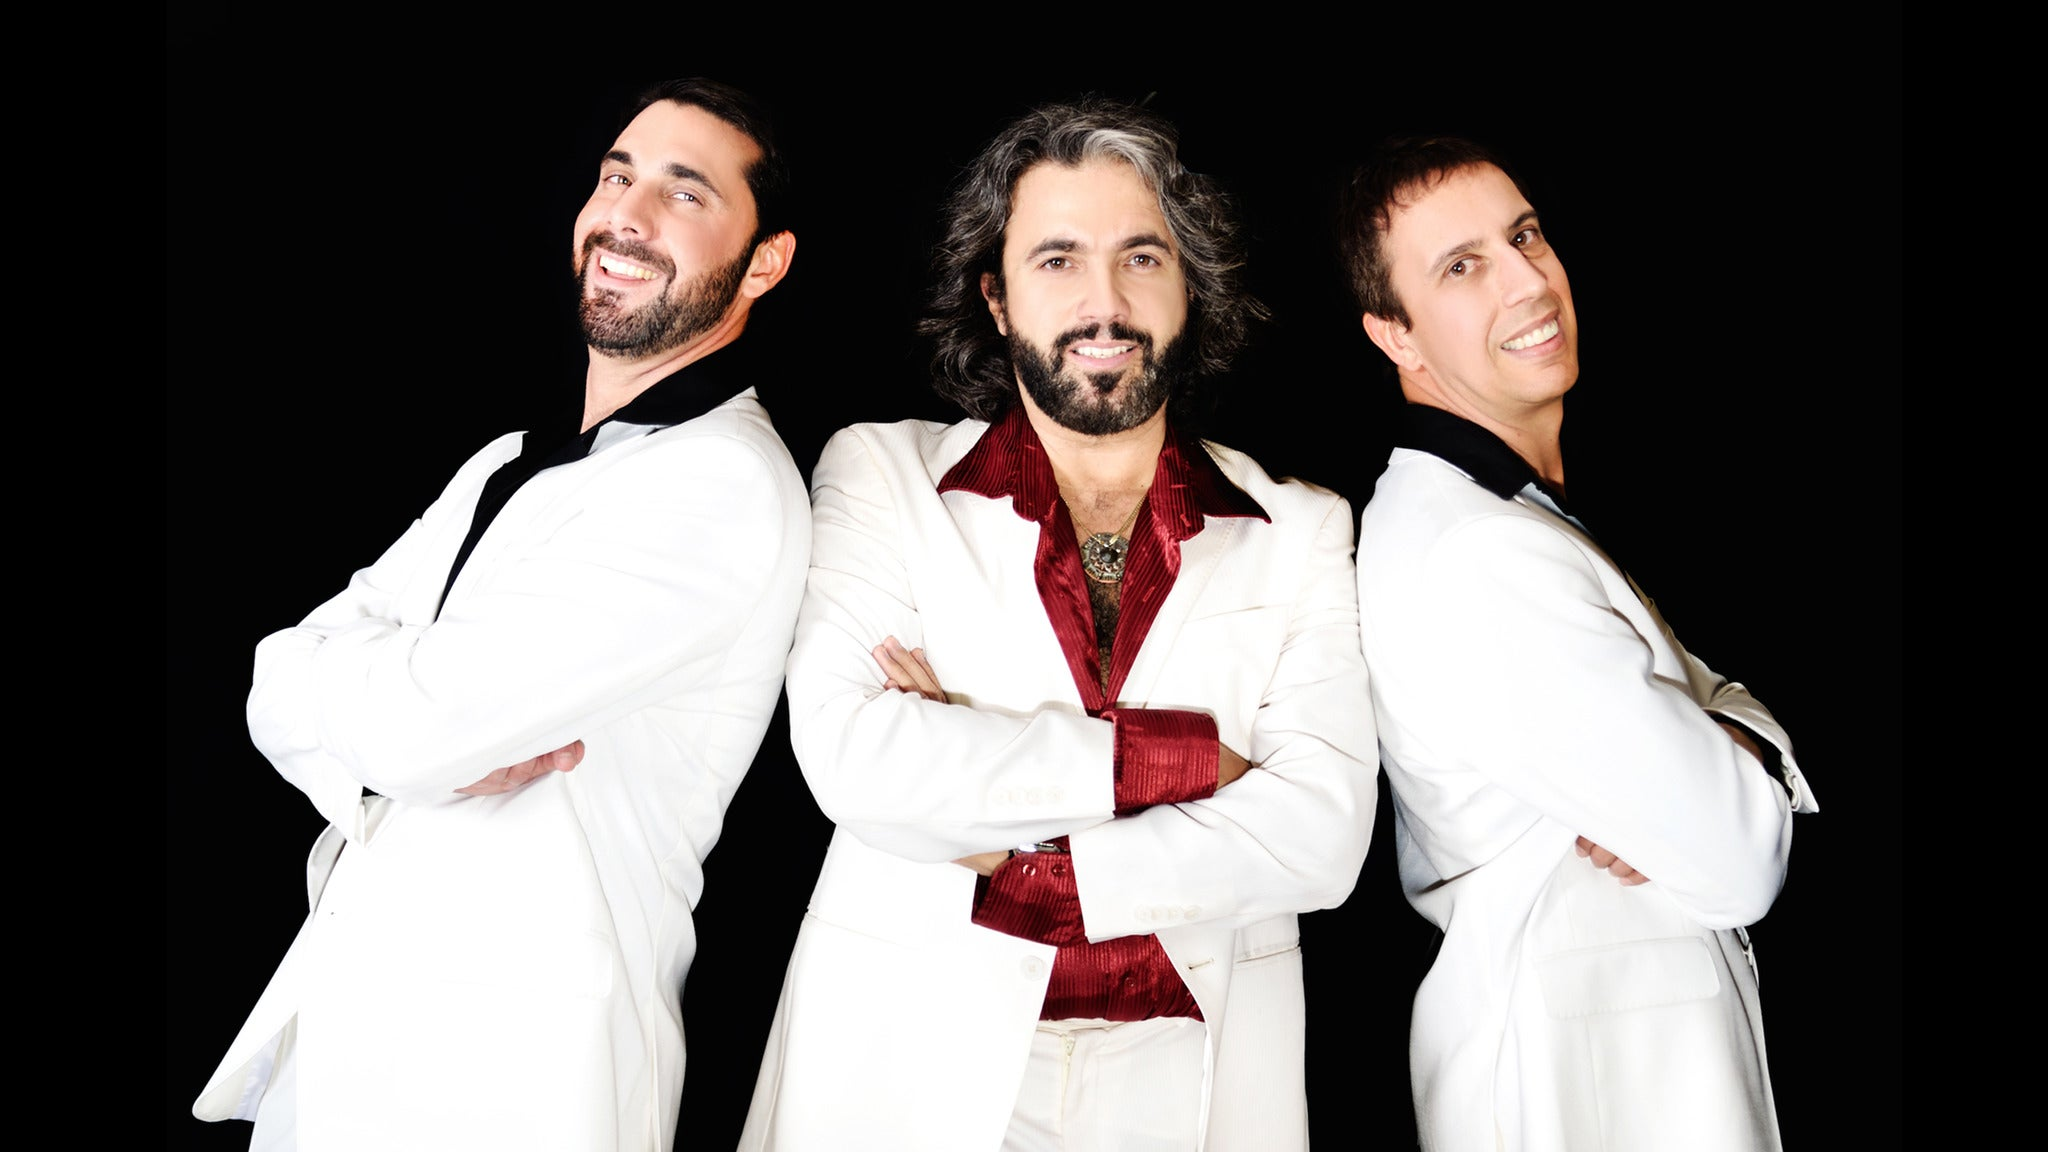 Bee Gees Gold - A Tribute to The Bee Gees at The Cave